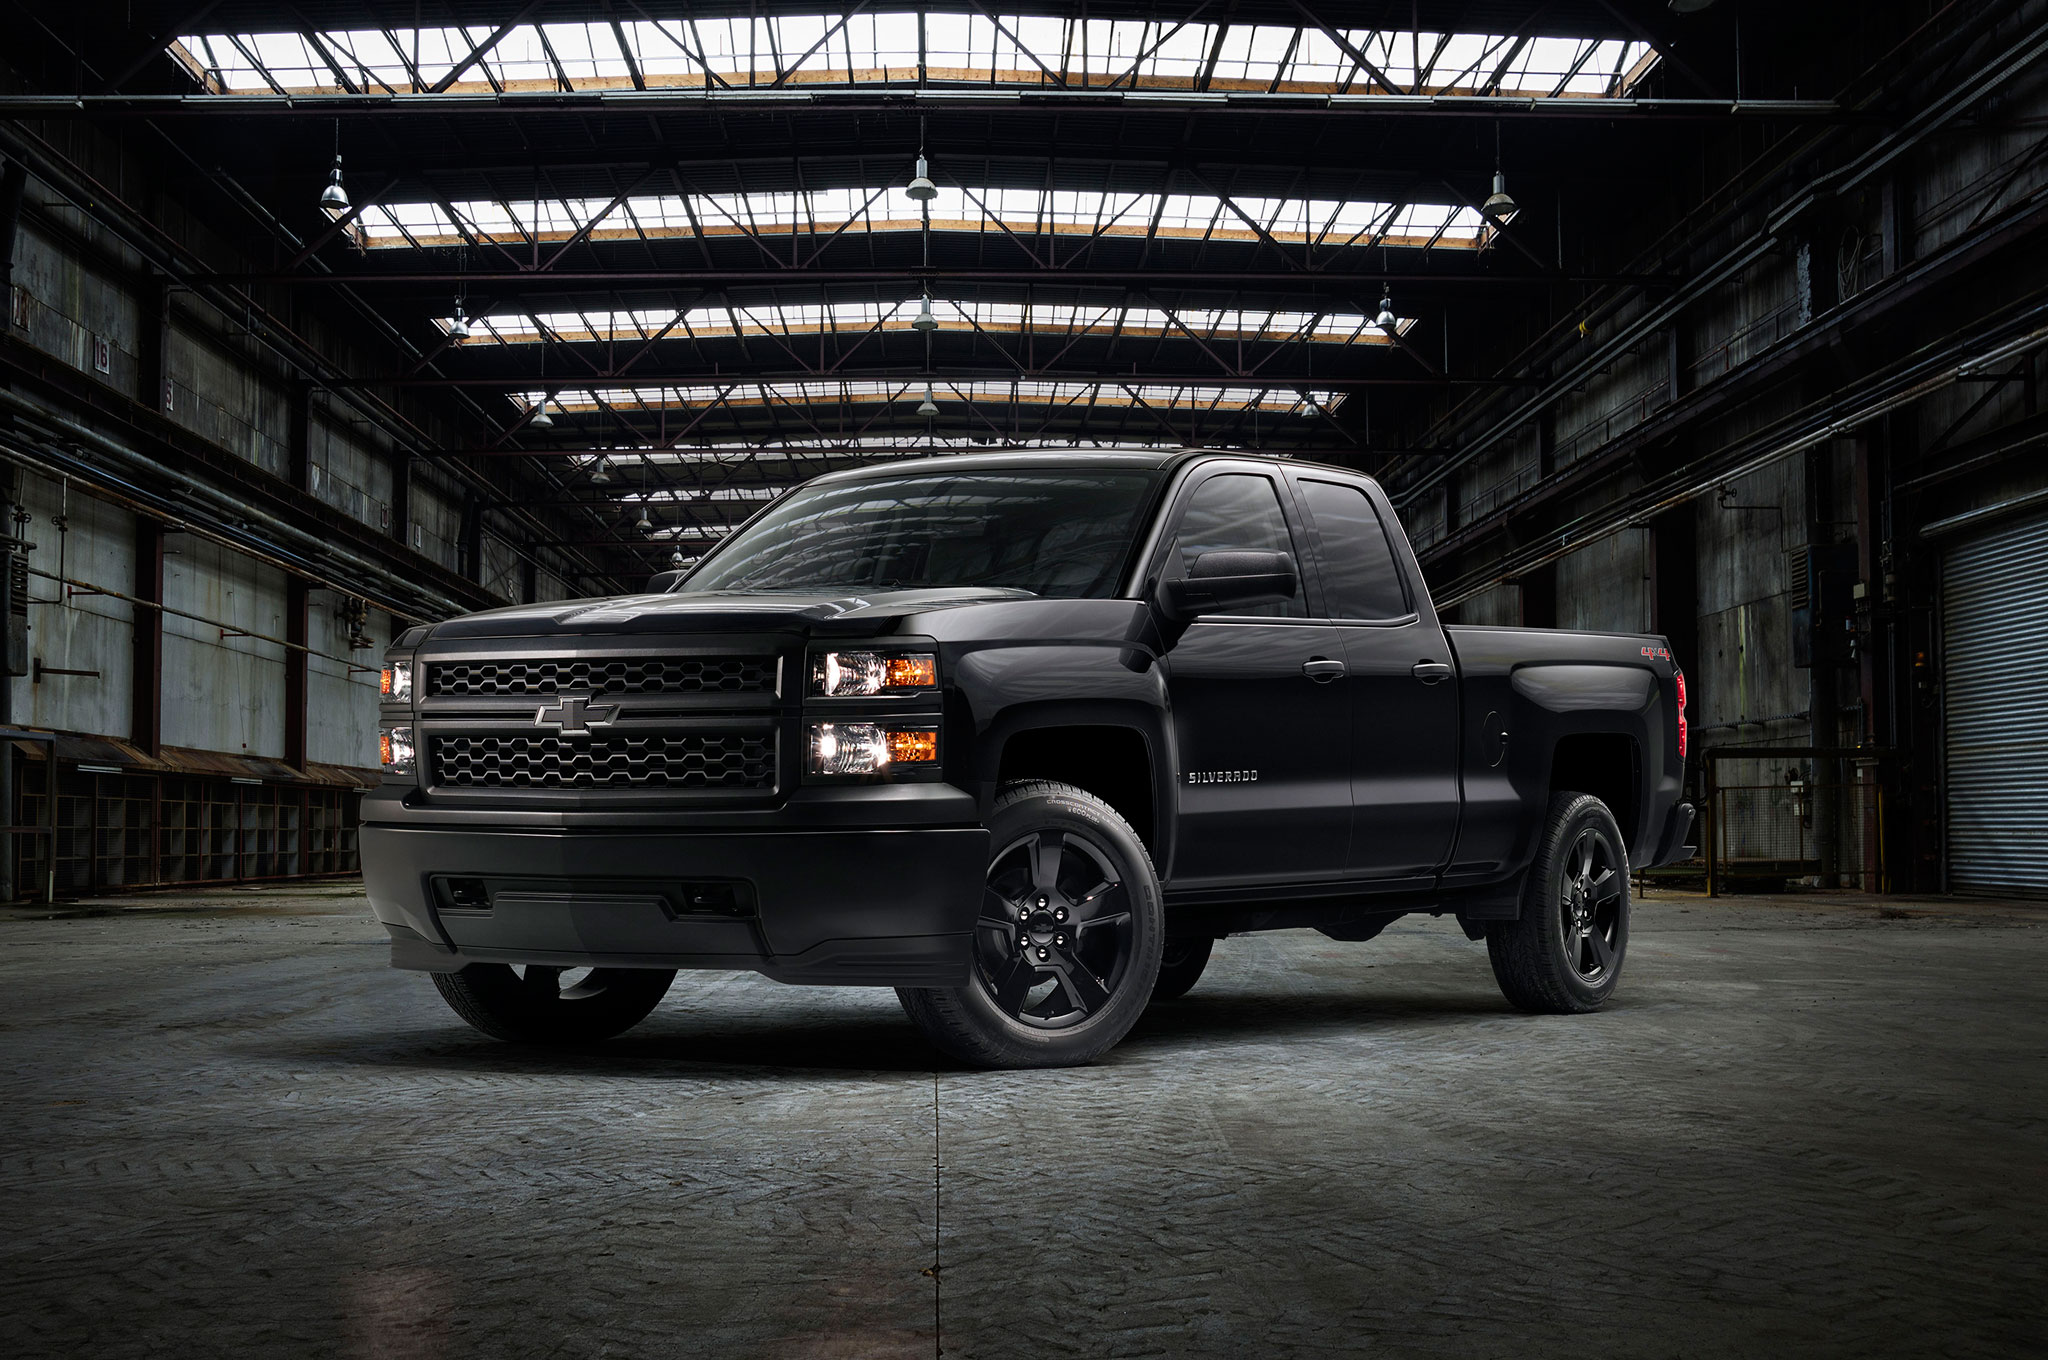 Chevrolet Silverado 1500 W/T Black Out 2015: apariencia ...